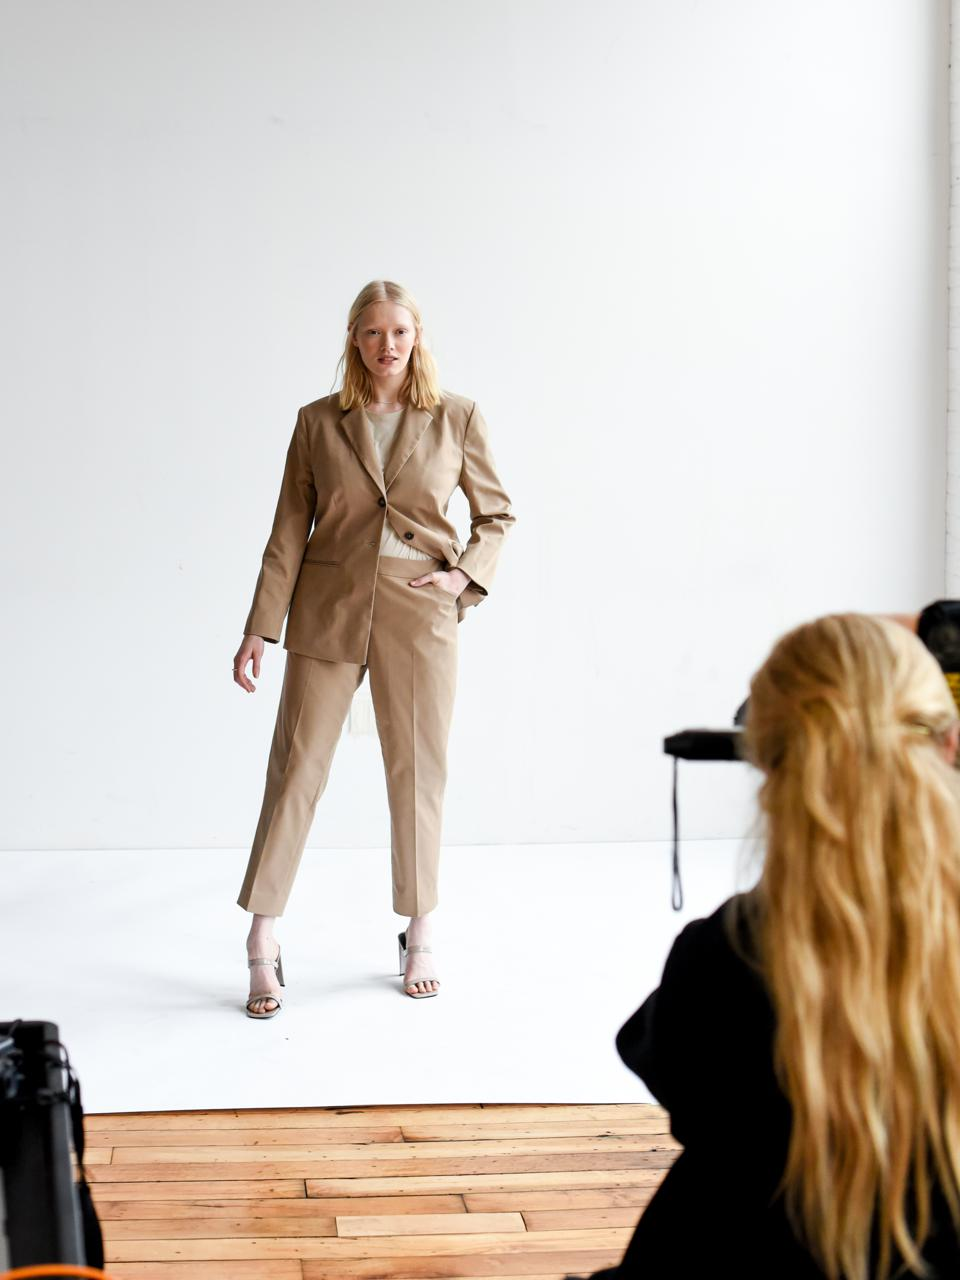 Model being photographed in a beige pant suit